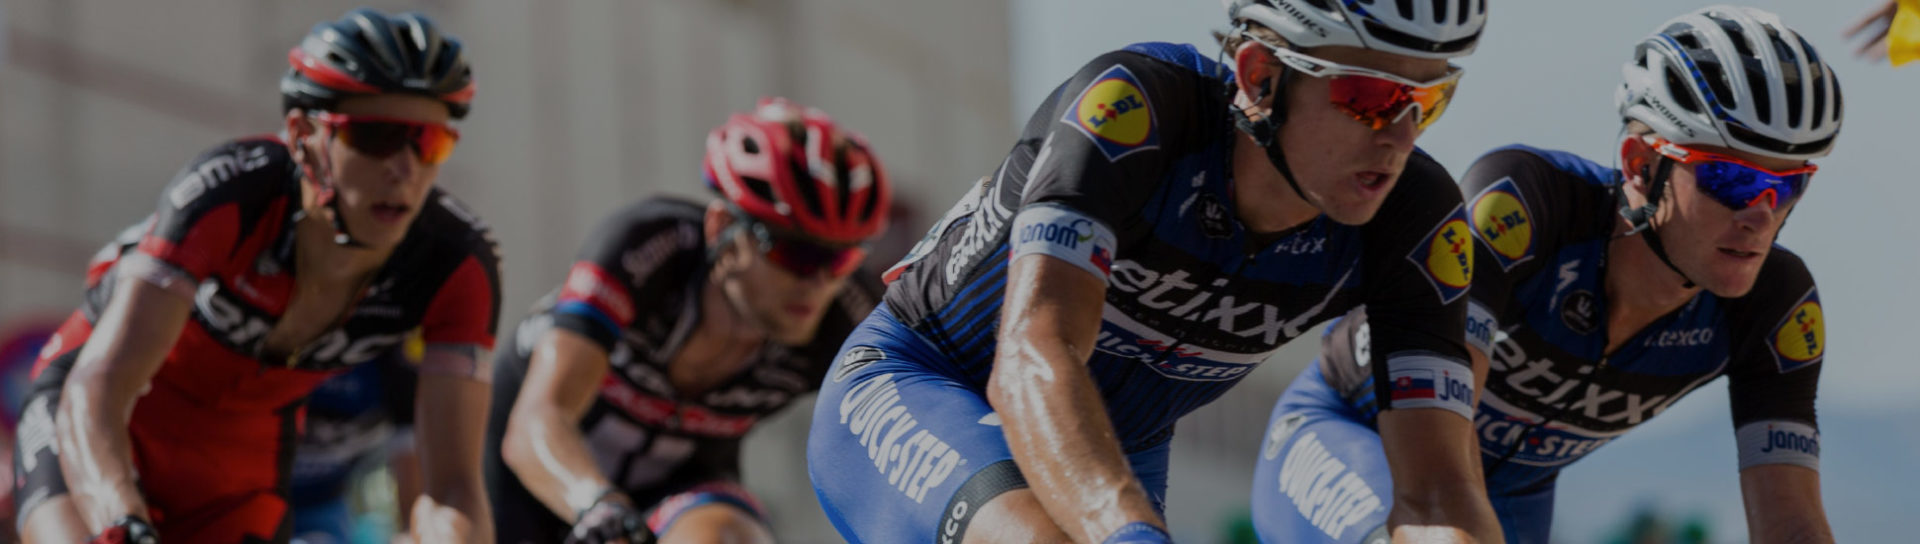 cyclist racing representing competitive advantage